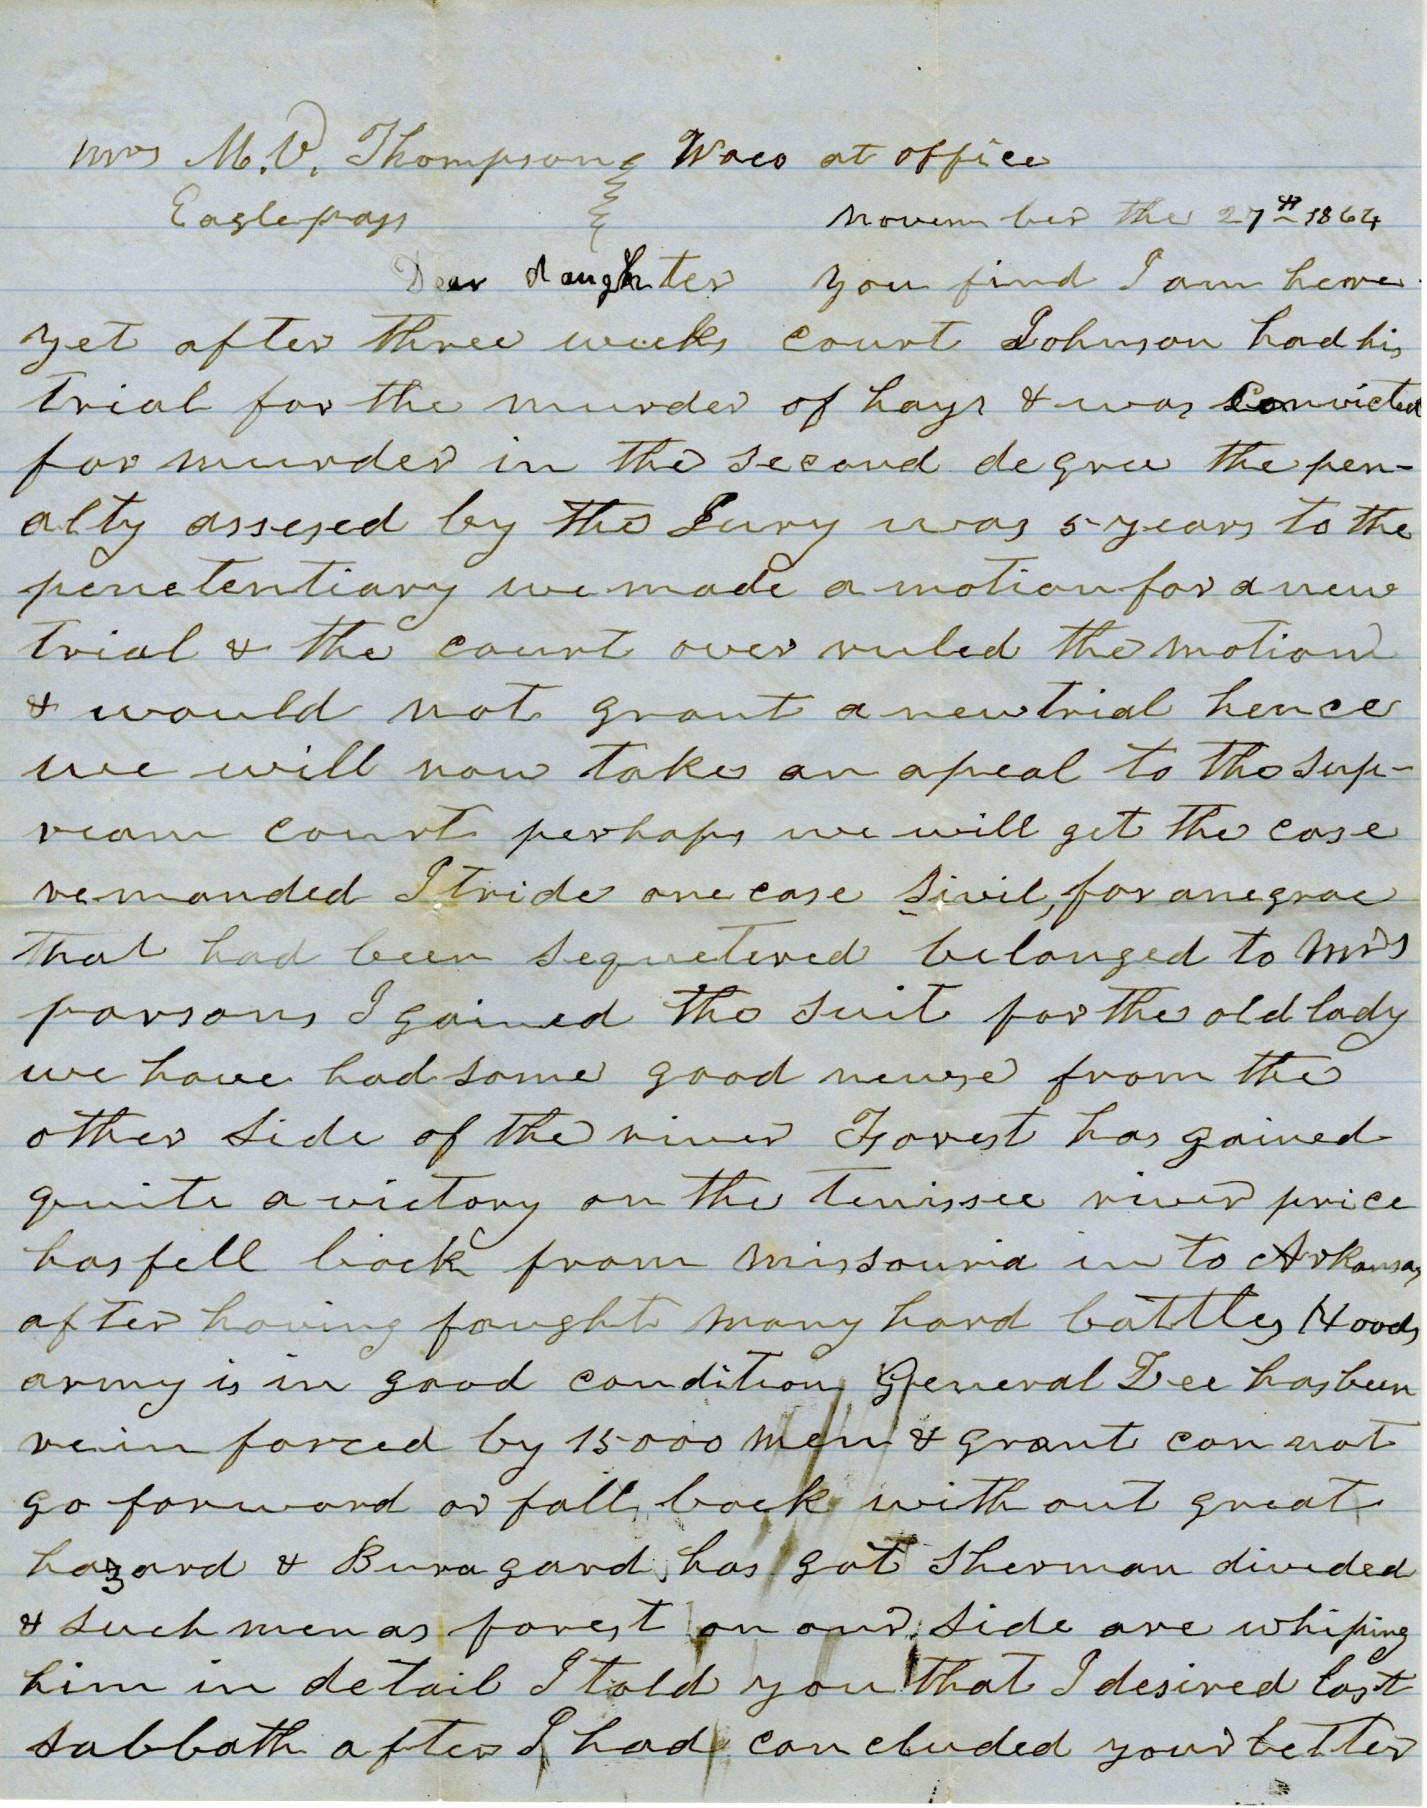 Letter from Richard N. Goode to Mary Virginia Thompson, dated November 27, 1864